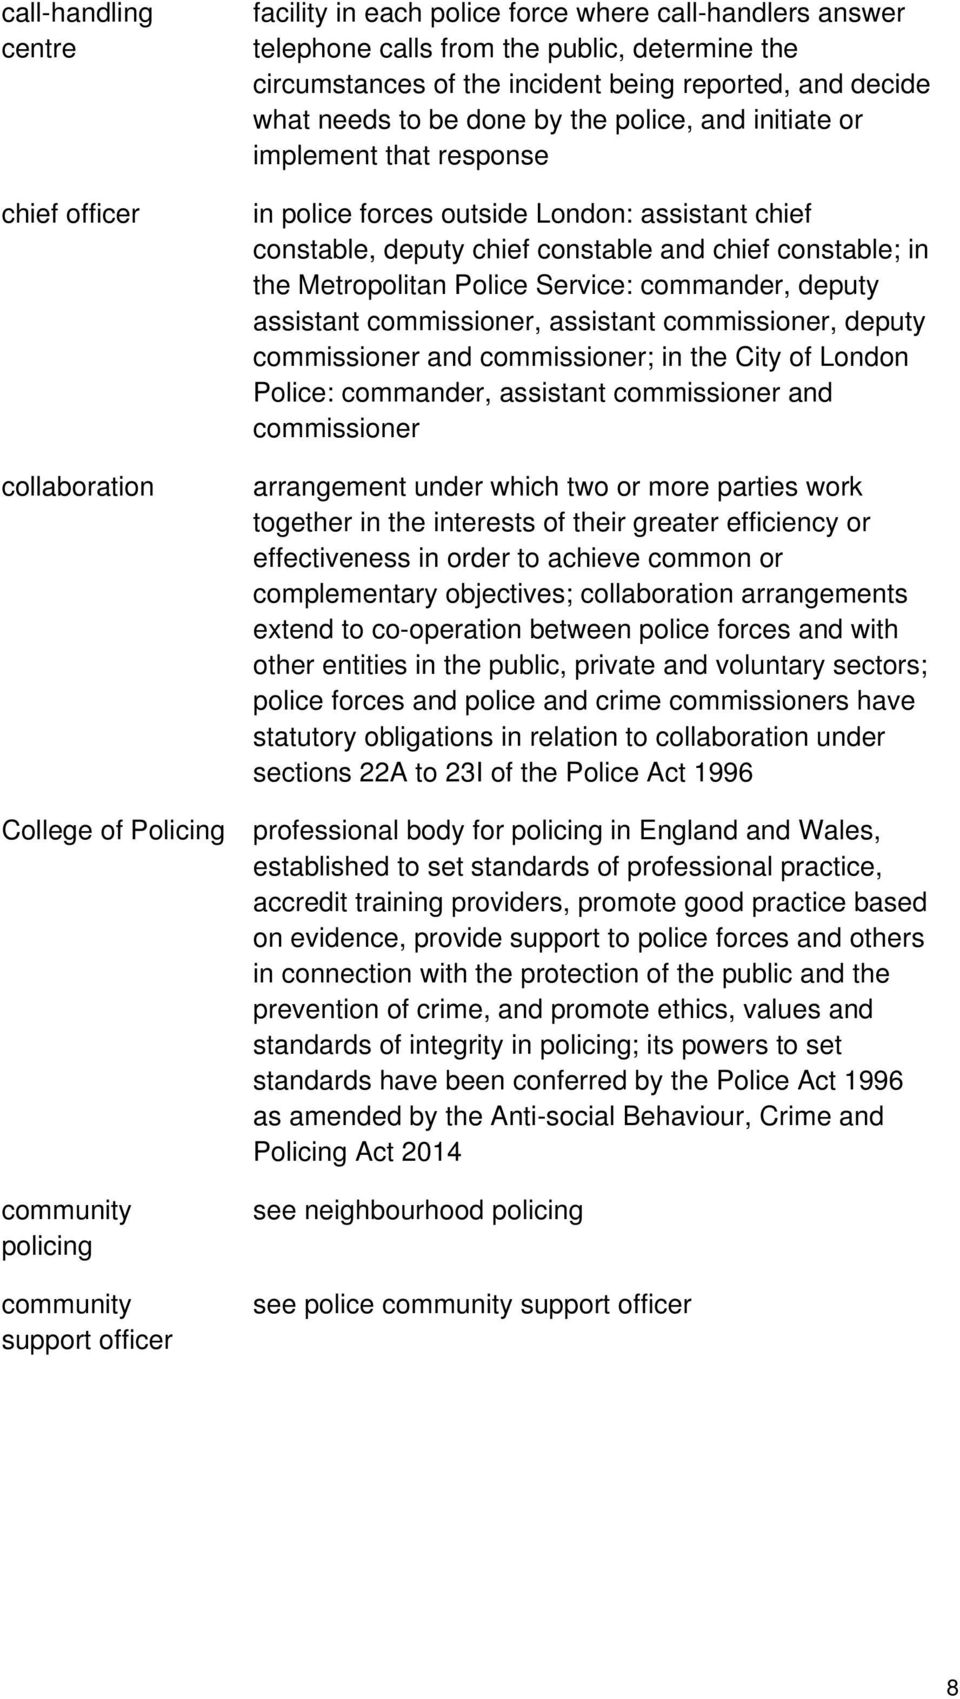 chief constable, deputy chief constable and chief constable; in the Metropolitan Police Service: commander, deputy assistant commissioner, assistant commissioner, deputy commissioner and